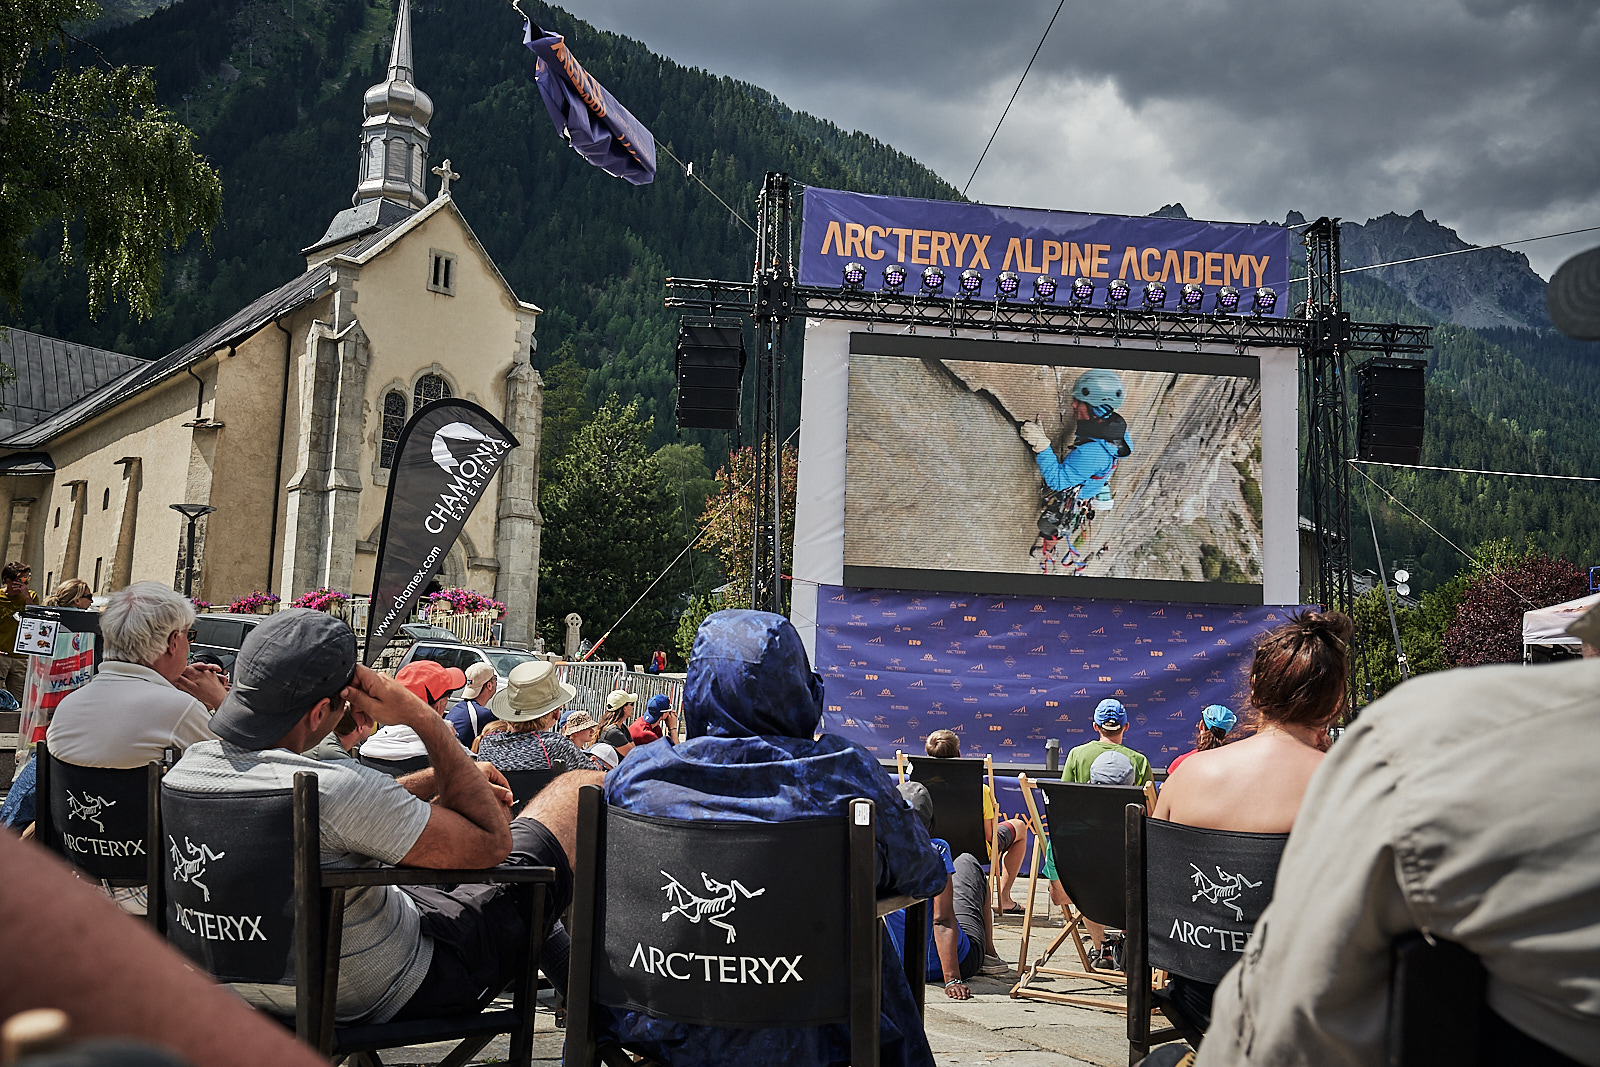 Sign up for free digital events from the Arc'teryx Alpine Academy